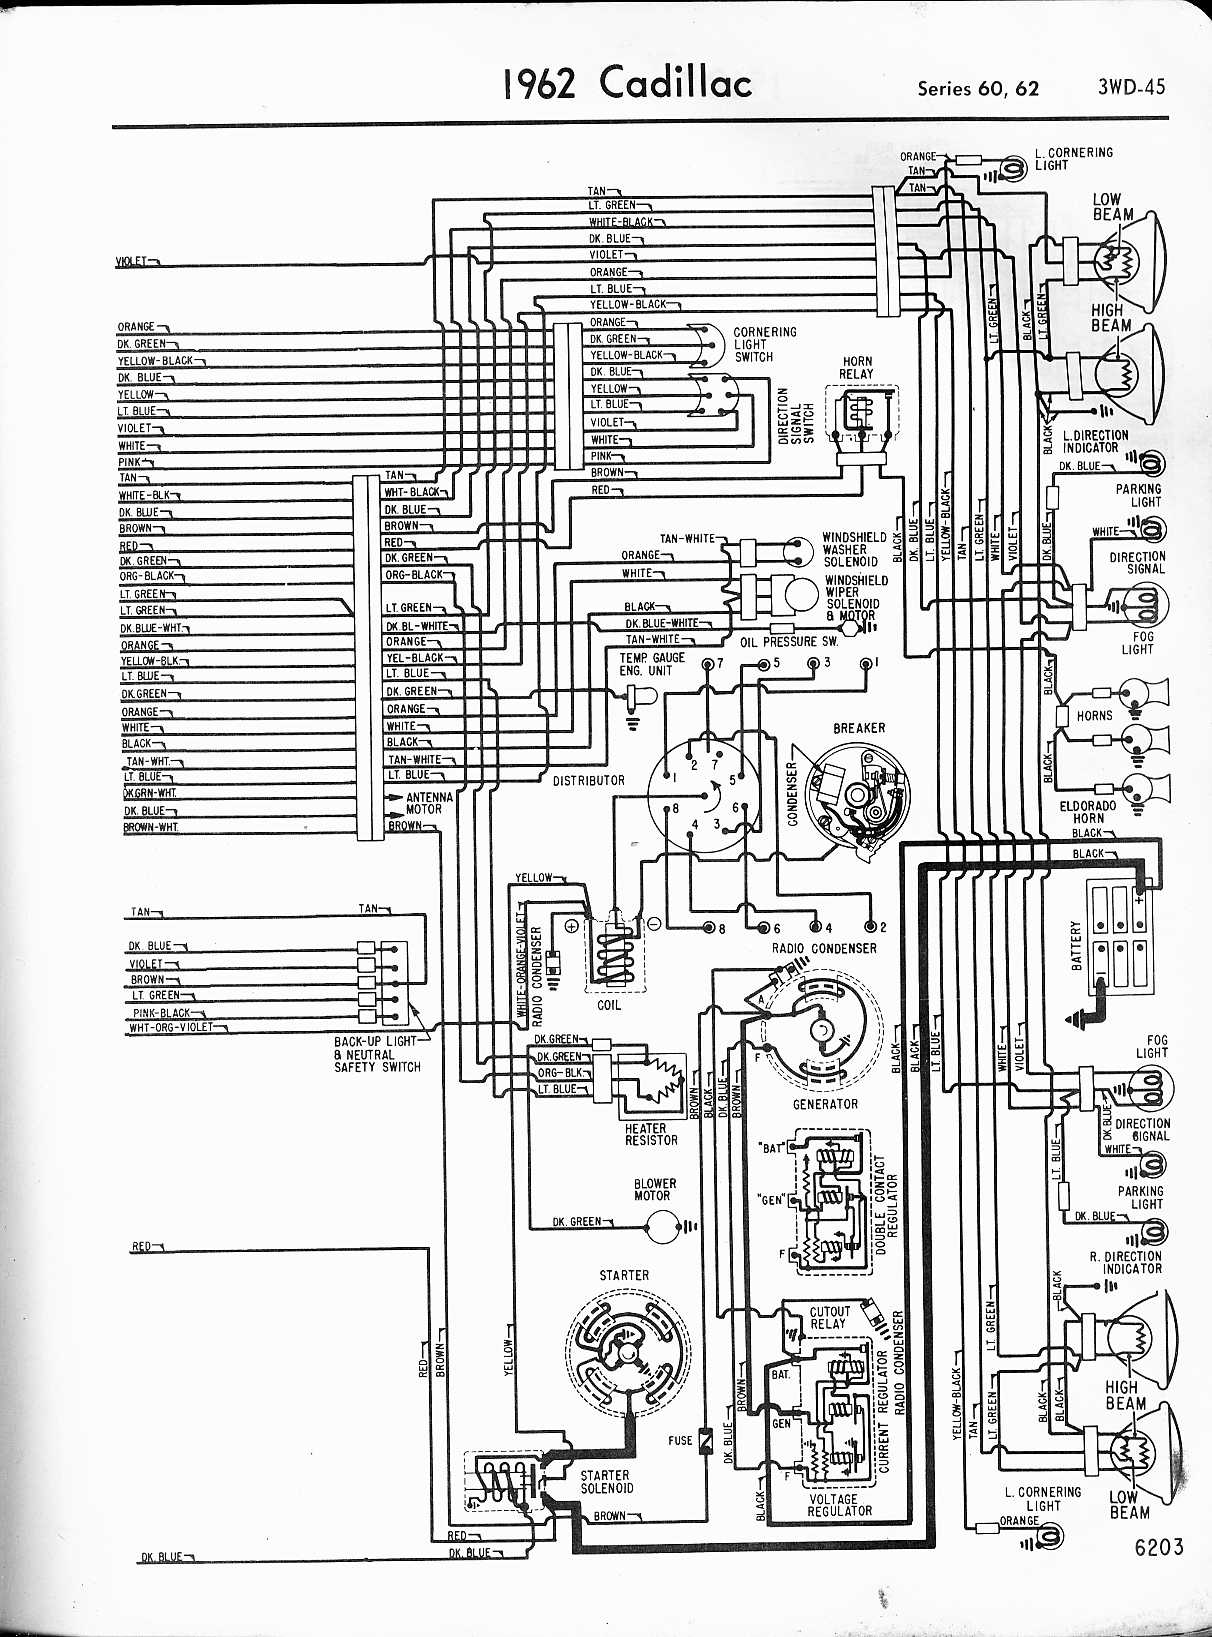 55 cadillac wiring diagram 9 14 asyaunited de